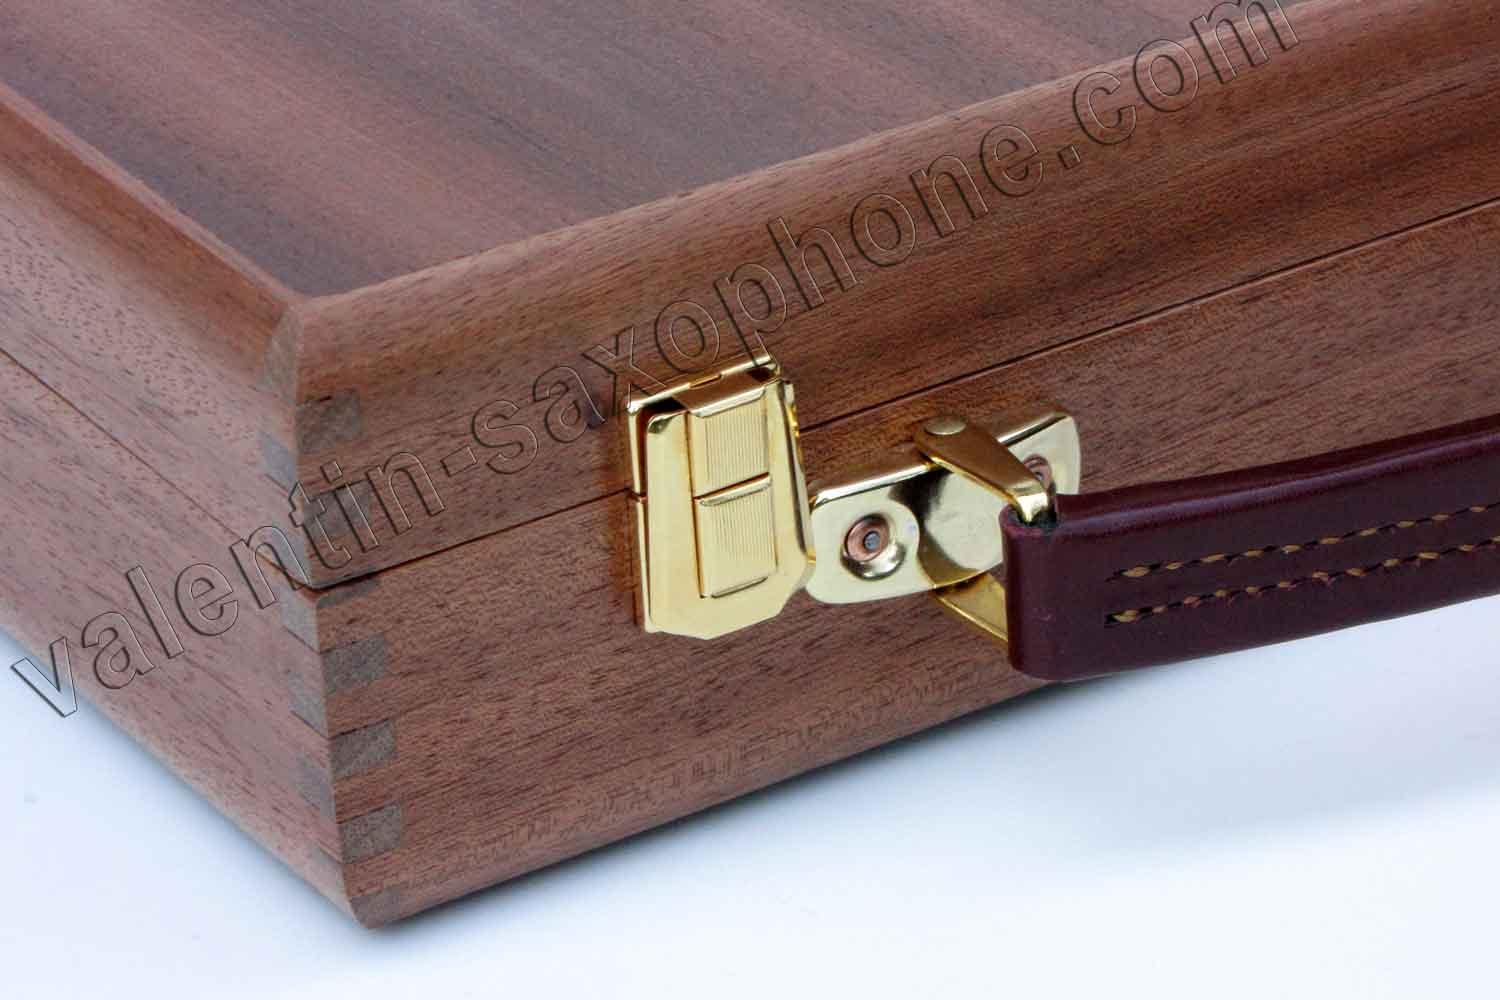 Valentin cases : Those cases are designed and handmade by myself.<br>Thin gold plated latches and deluxe leather handle.